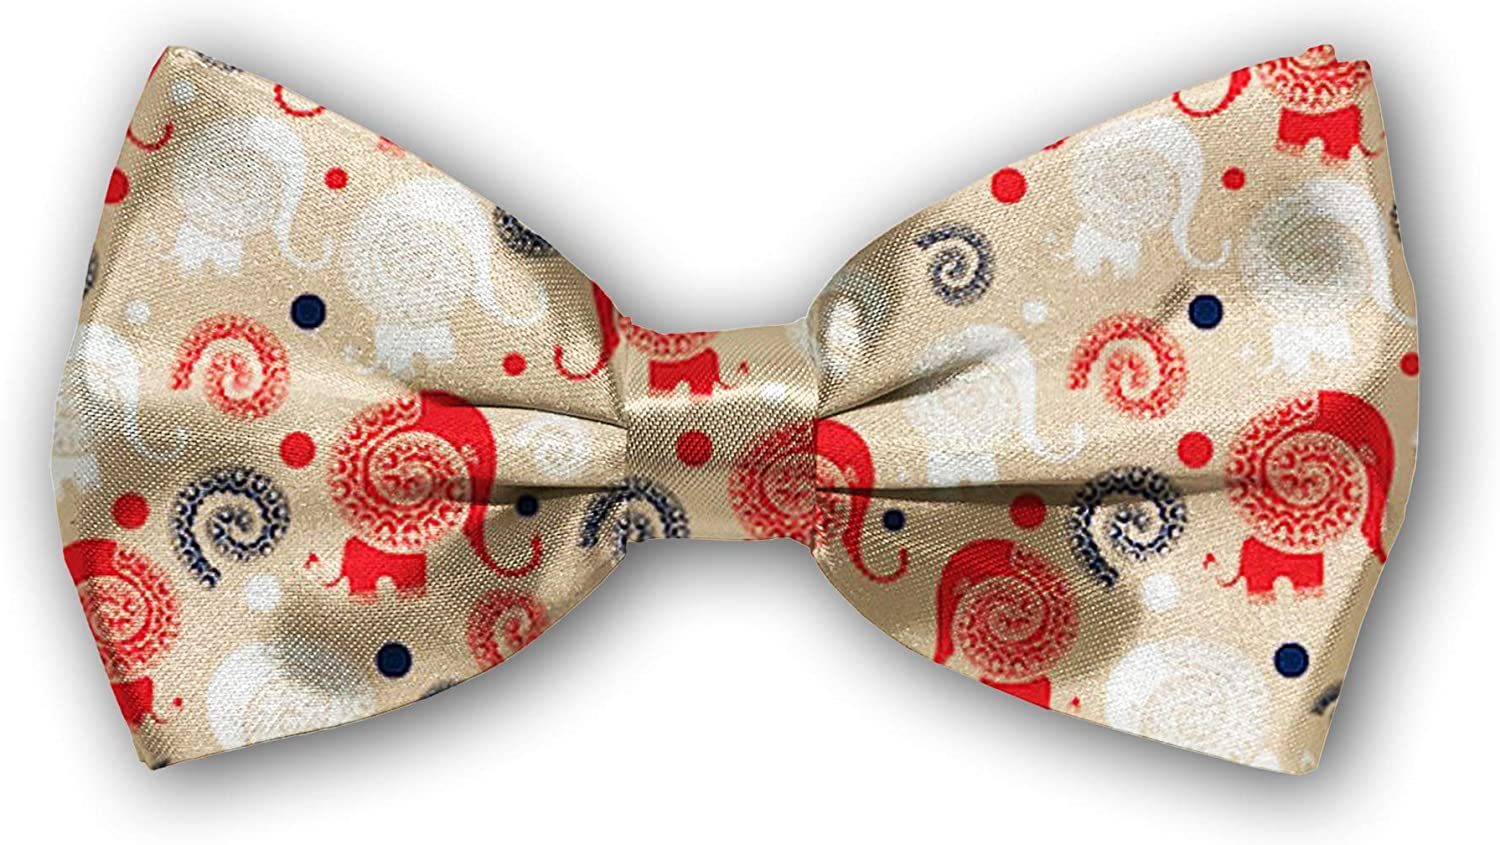 Bow Tie Tuxedo Butterfly Cotton Rapid rise Bowtie for Very popular Boys Adjustable Mens